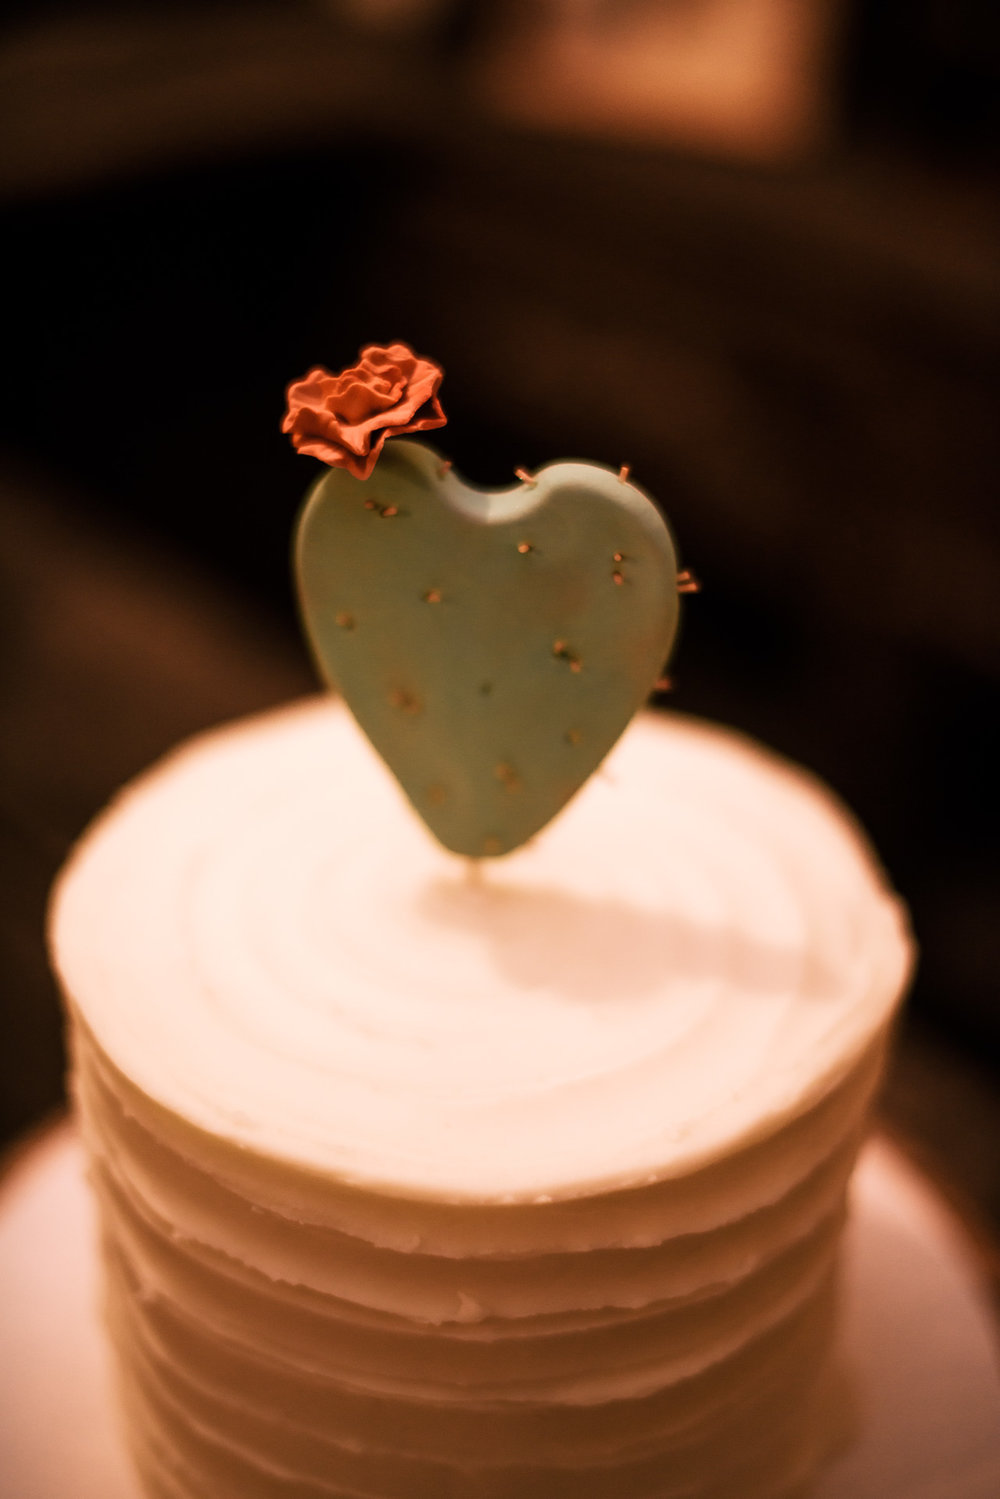 tiny red flower on heart shaped cactus topper captured by photographer during romantic wedding at the historic Leo Carrillo Ranch in Carlsbad California